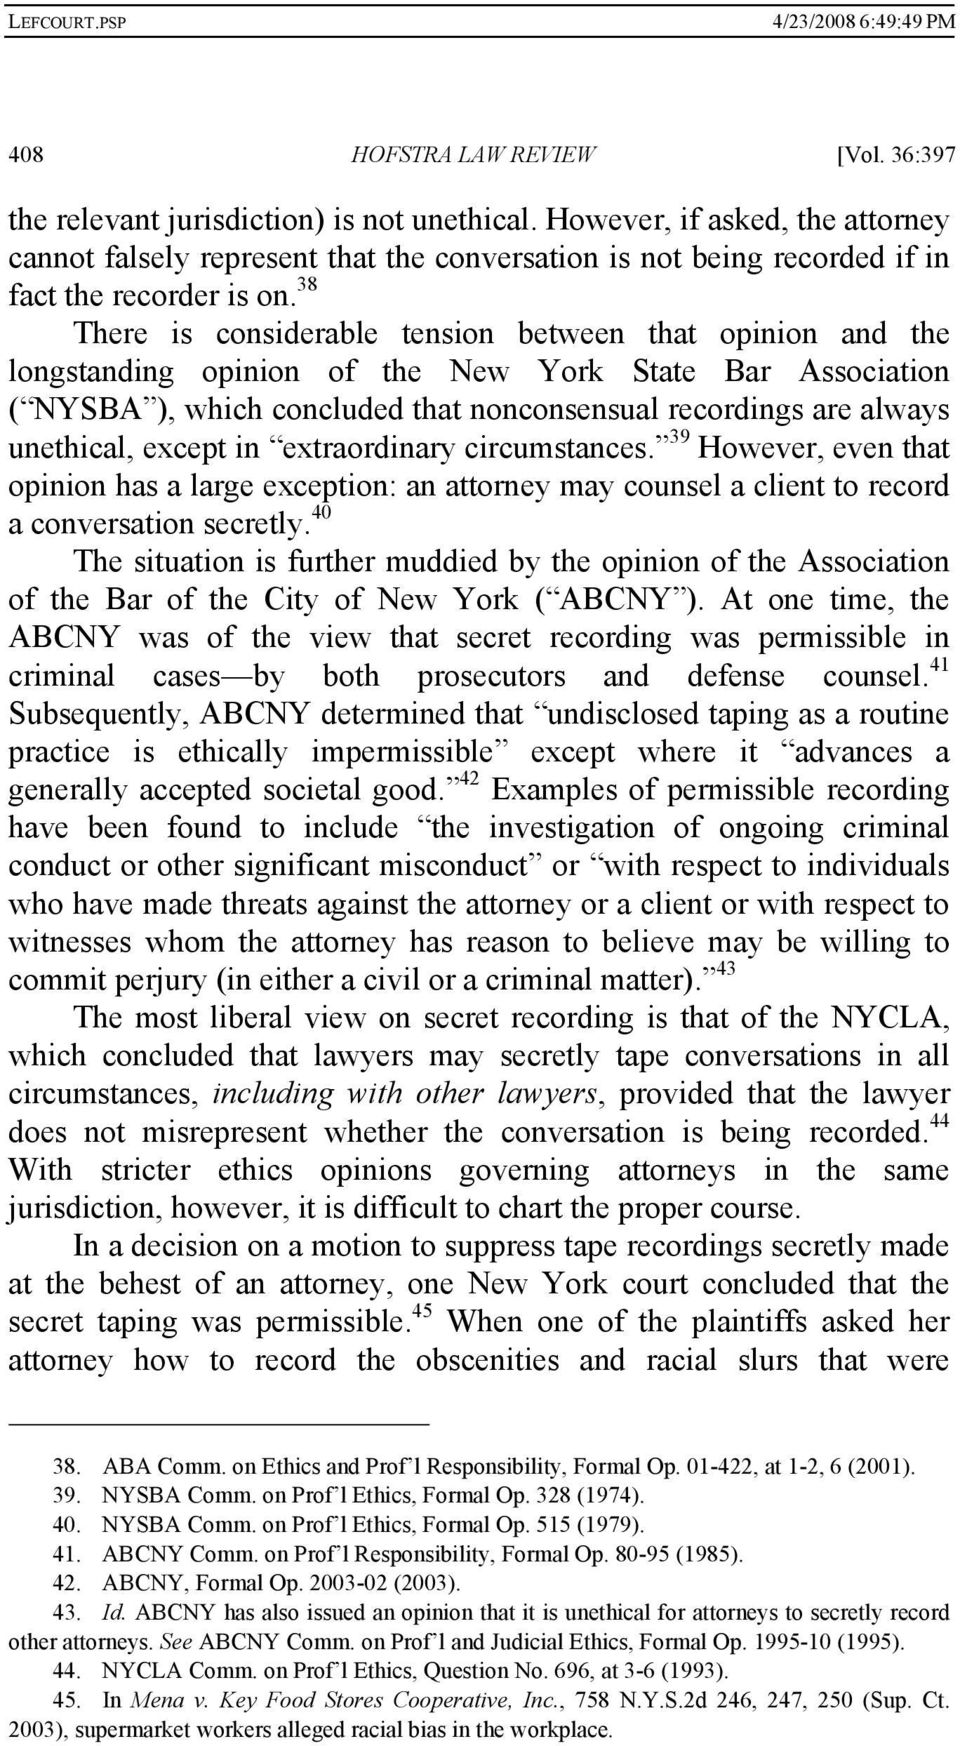 38 There is considerable tension between that opinion and the longstanding opinion of the New York State Bar Association ( NYSBA ), which concluded that nonconsensual recordings are always unethical,